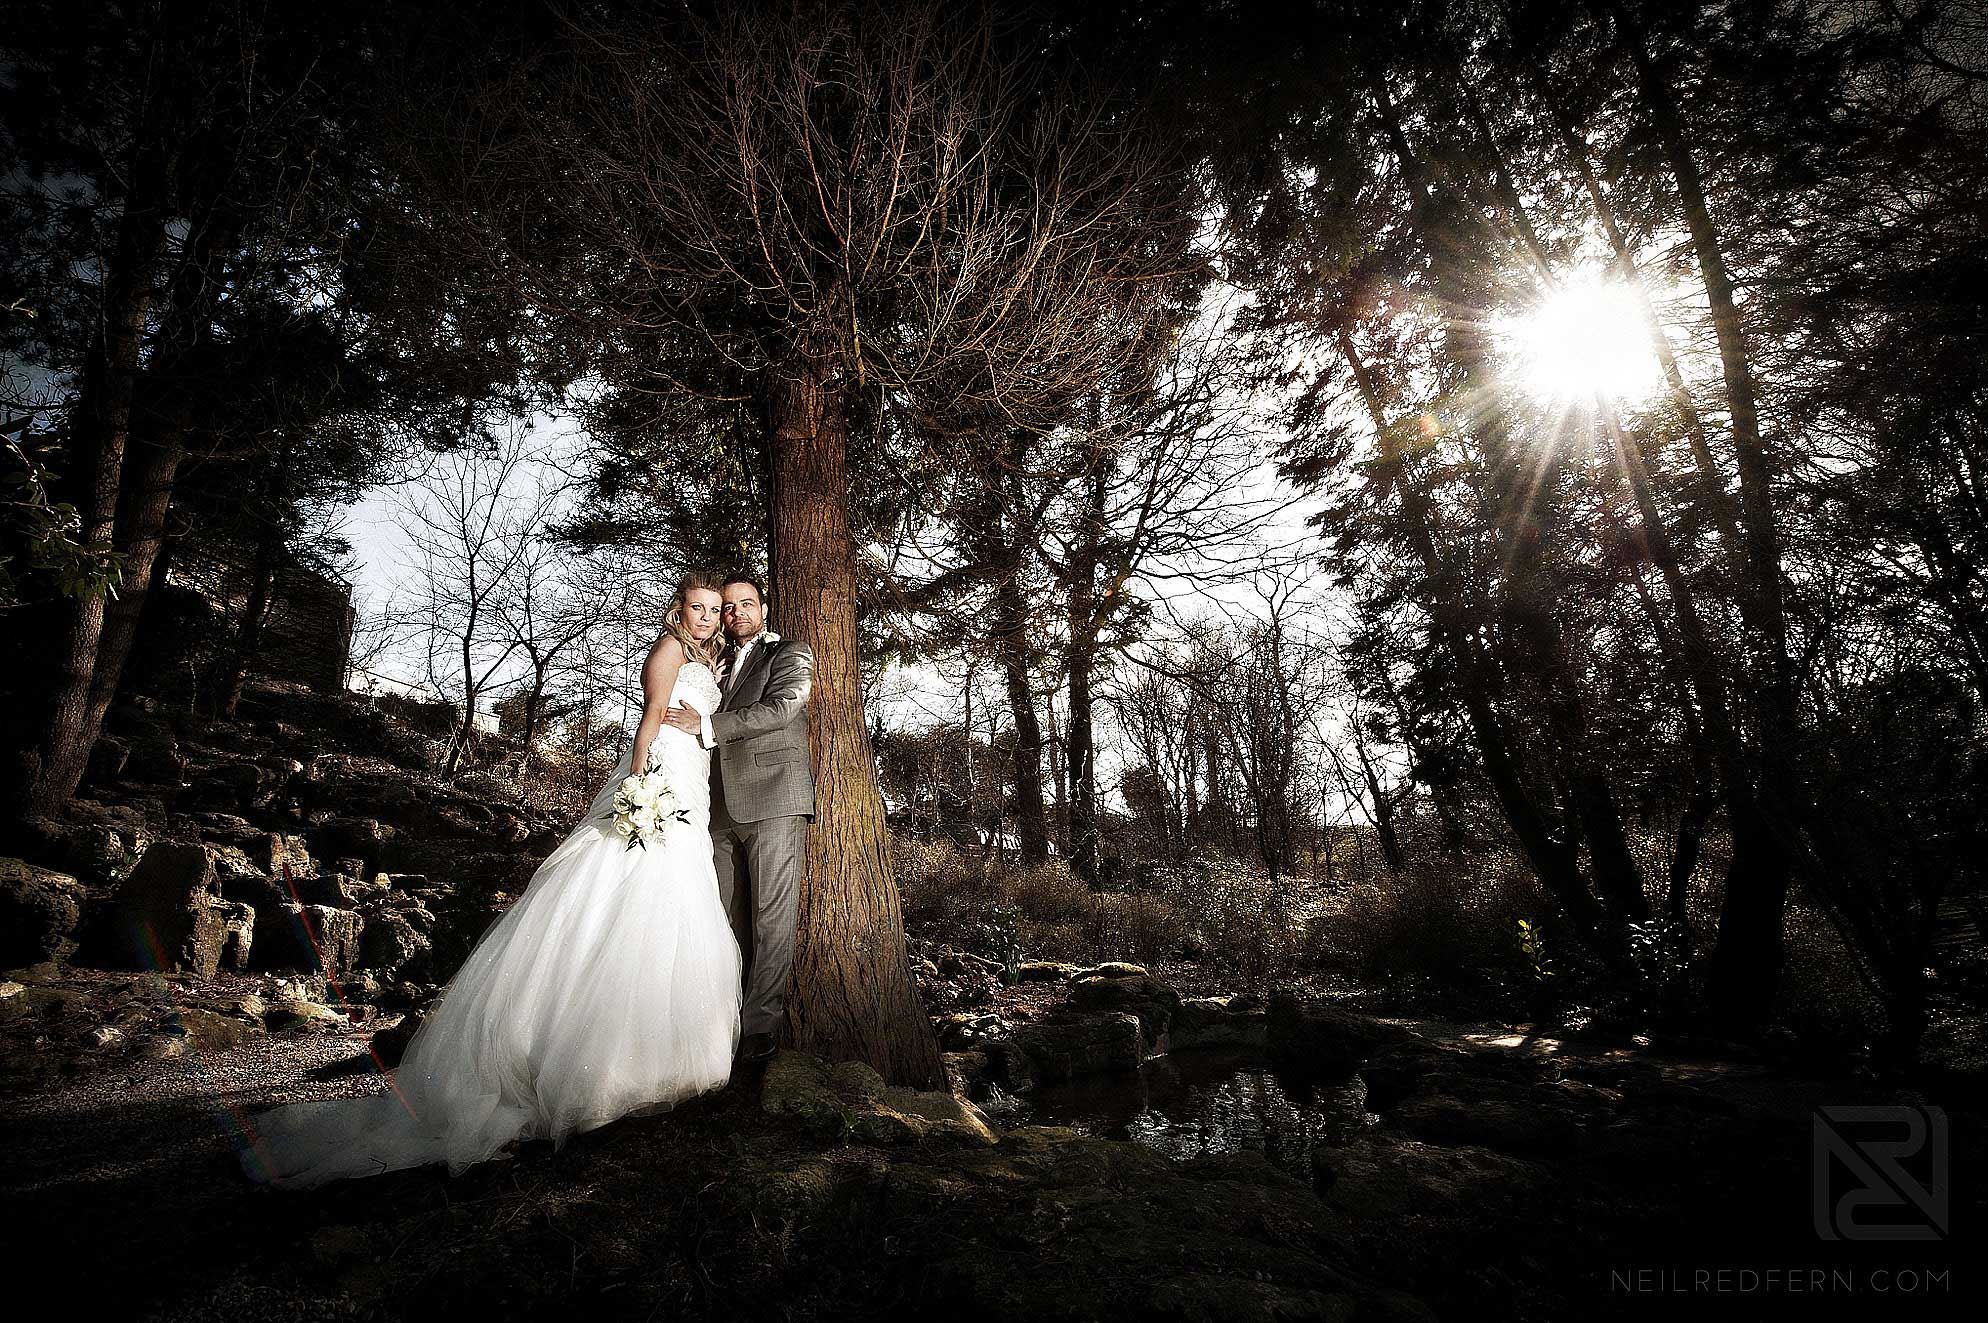 wedding-photography-at-mitton-hall